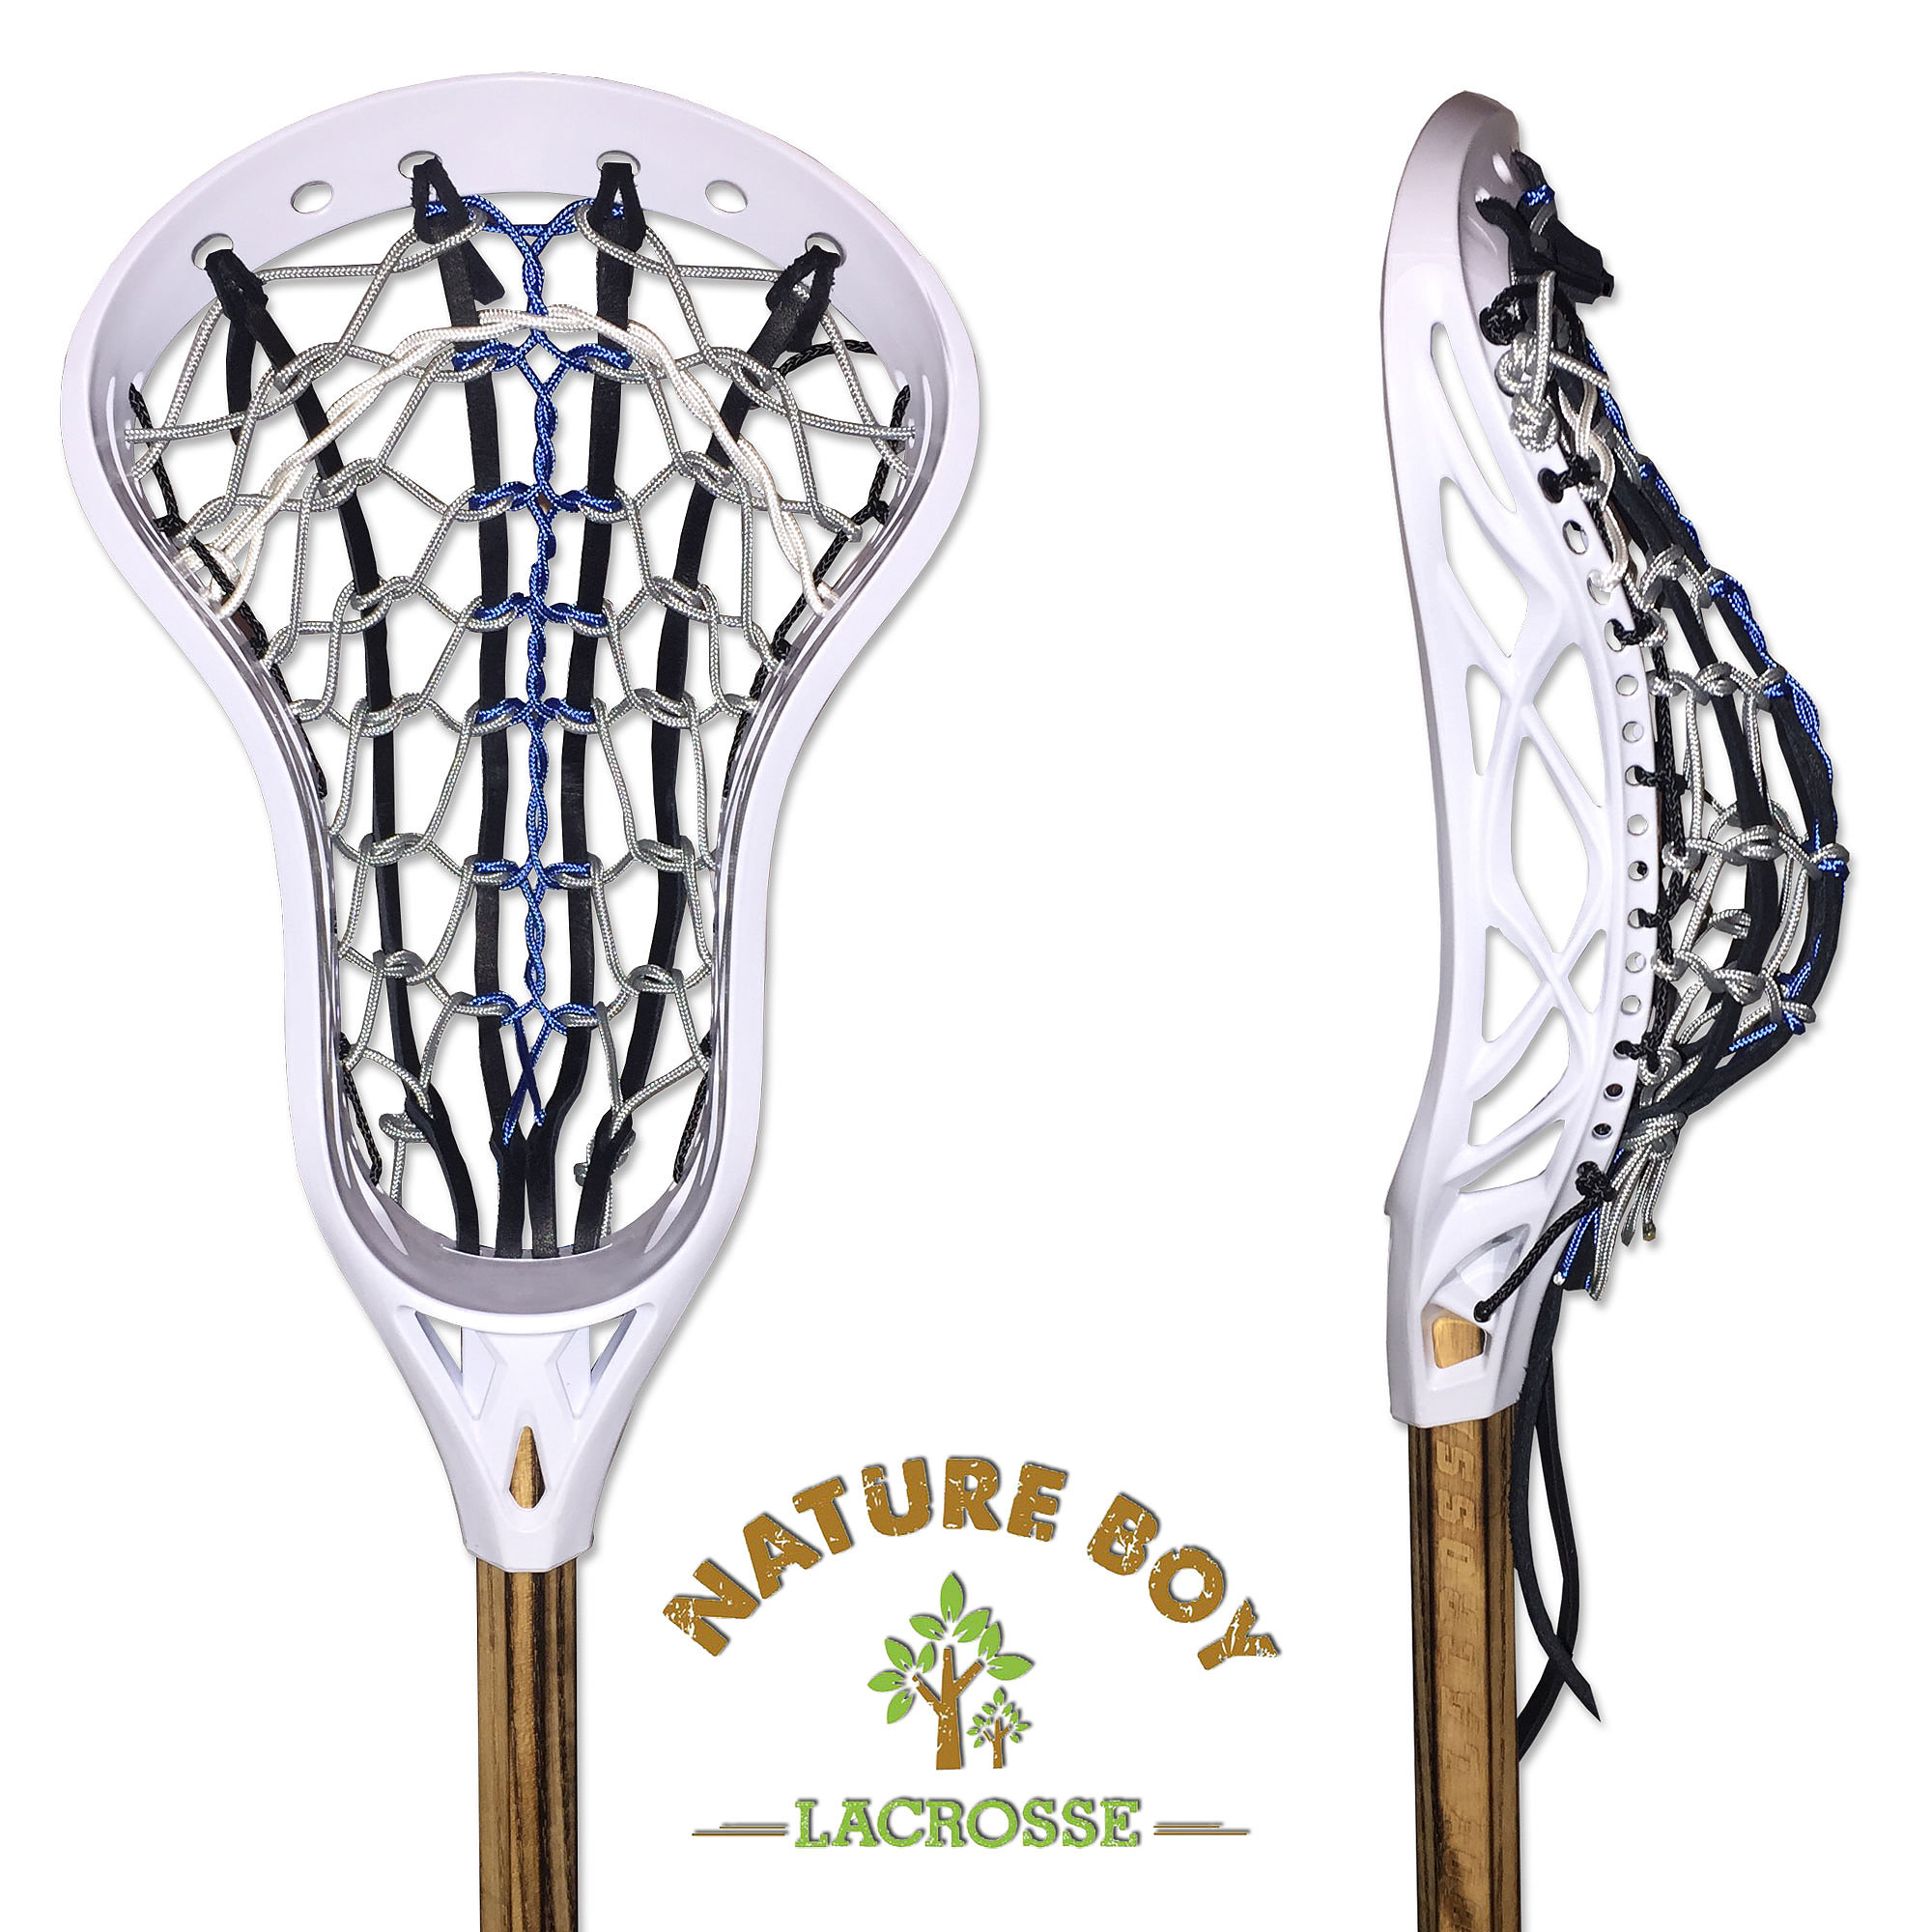 2000x2000 Natureboy Mini Sticks